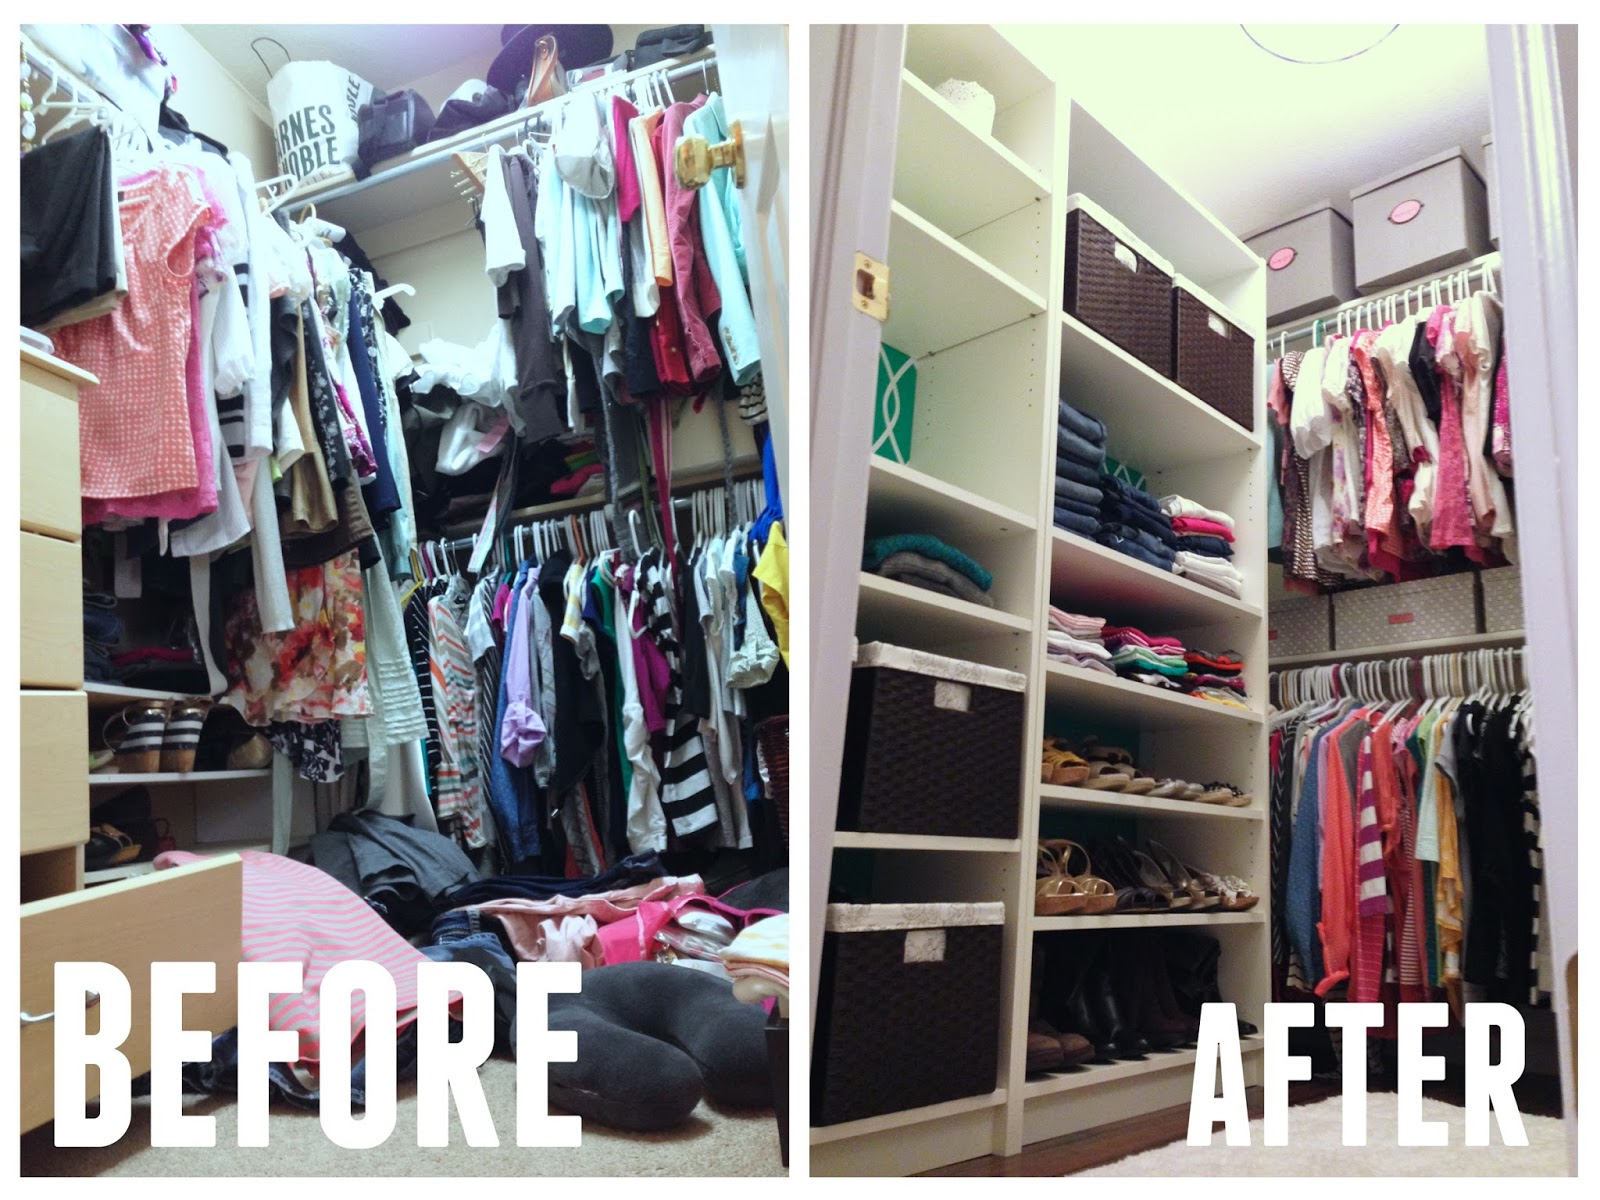 before closets with a closet shared organizing messy california domicile kids